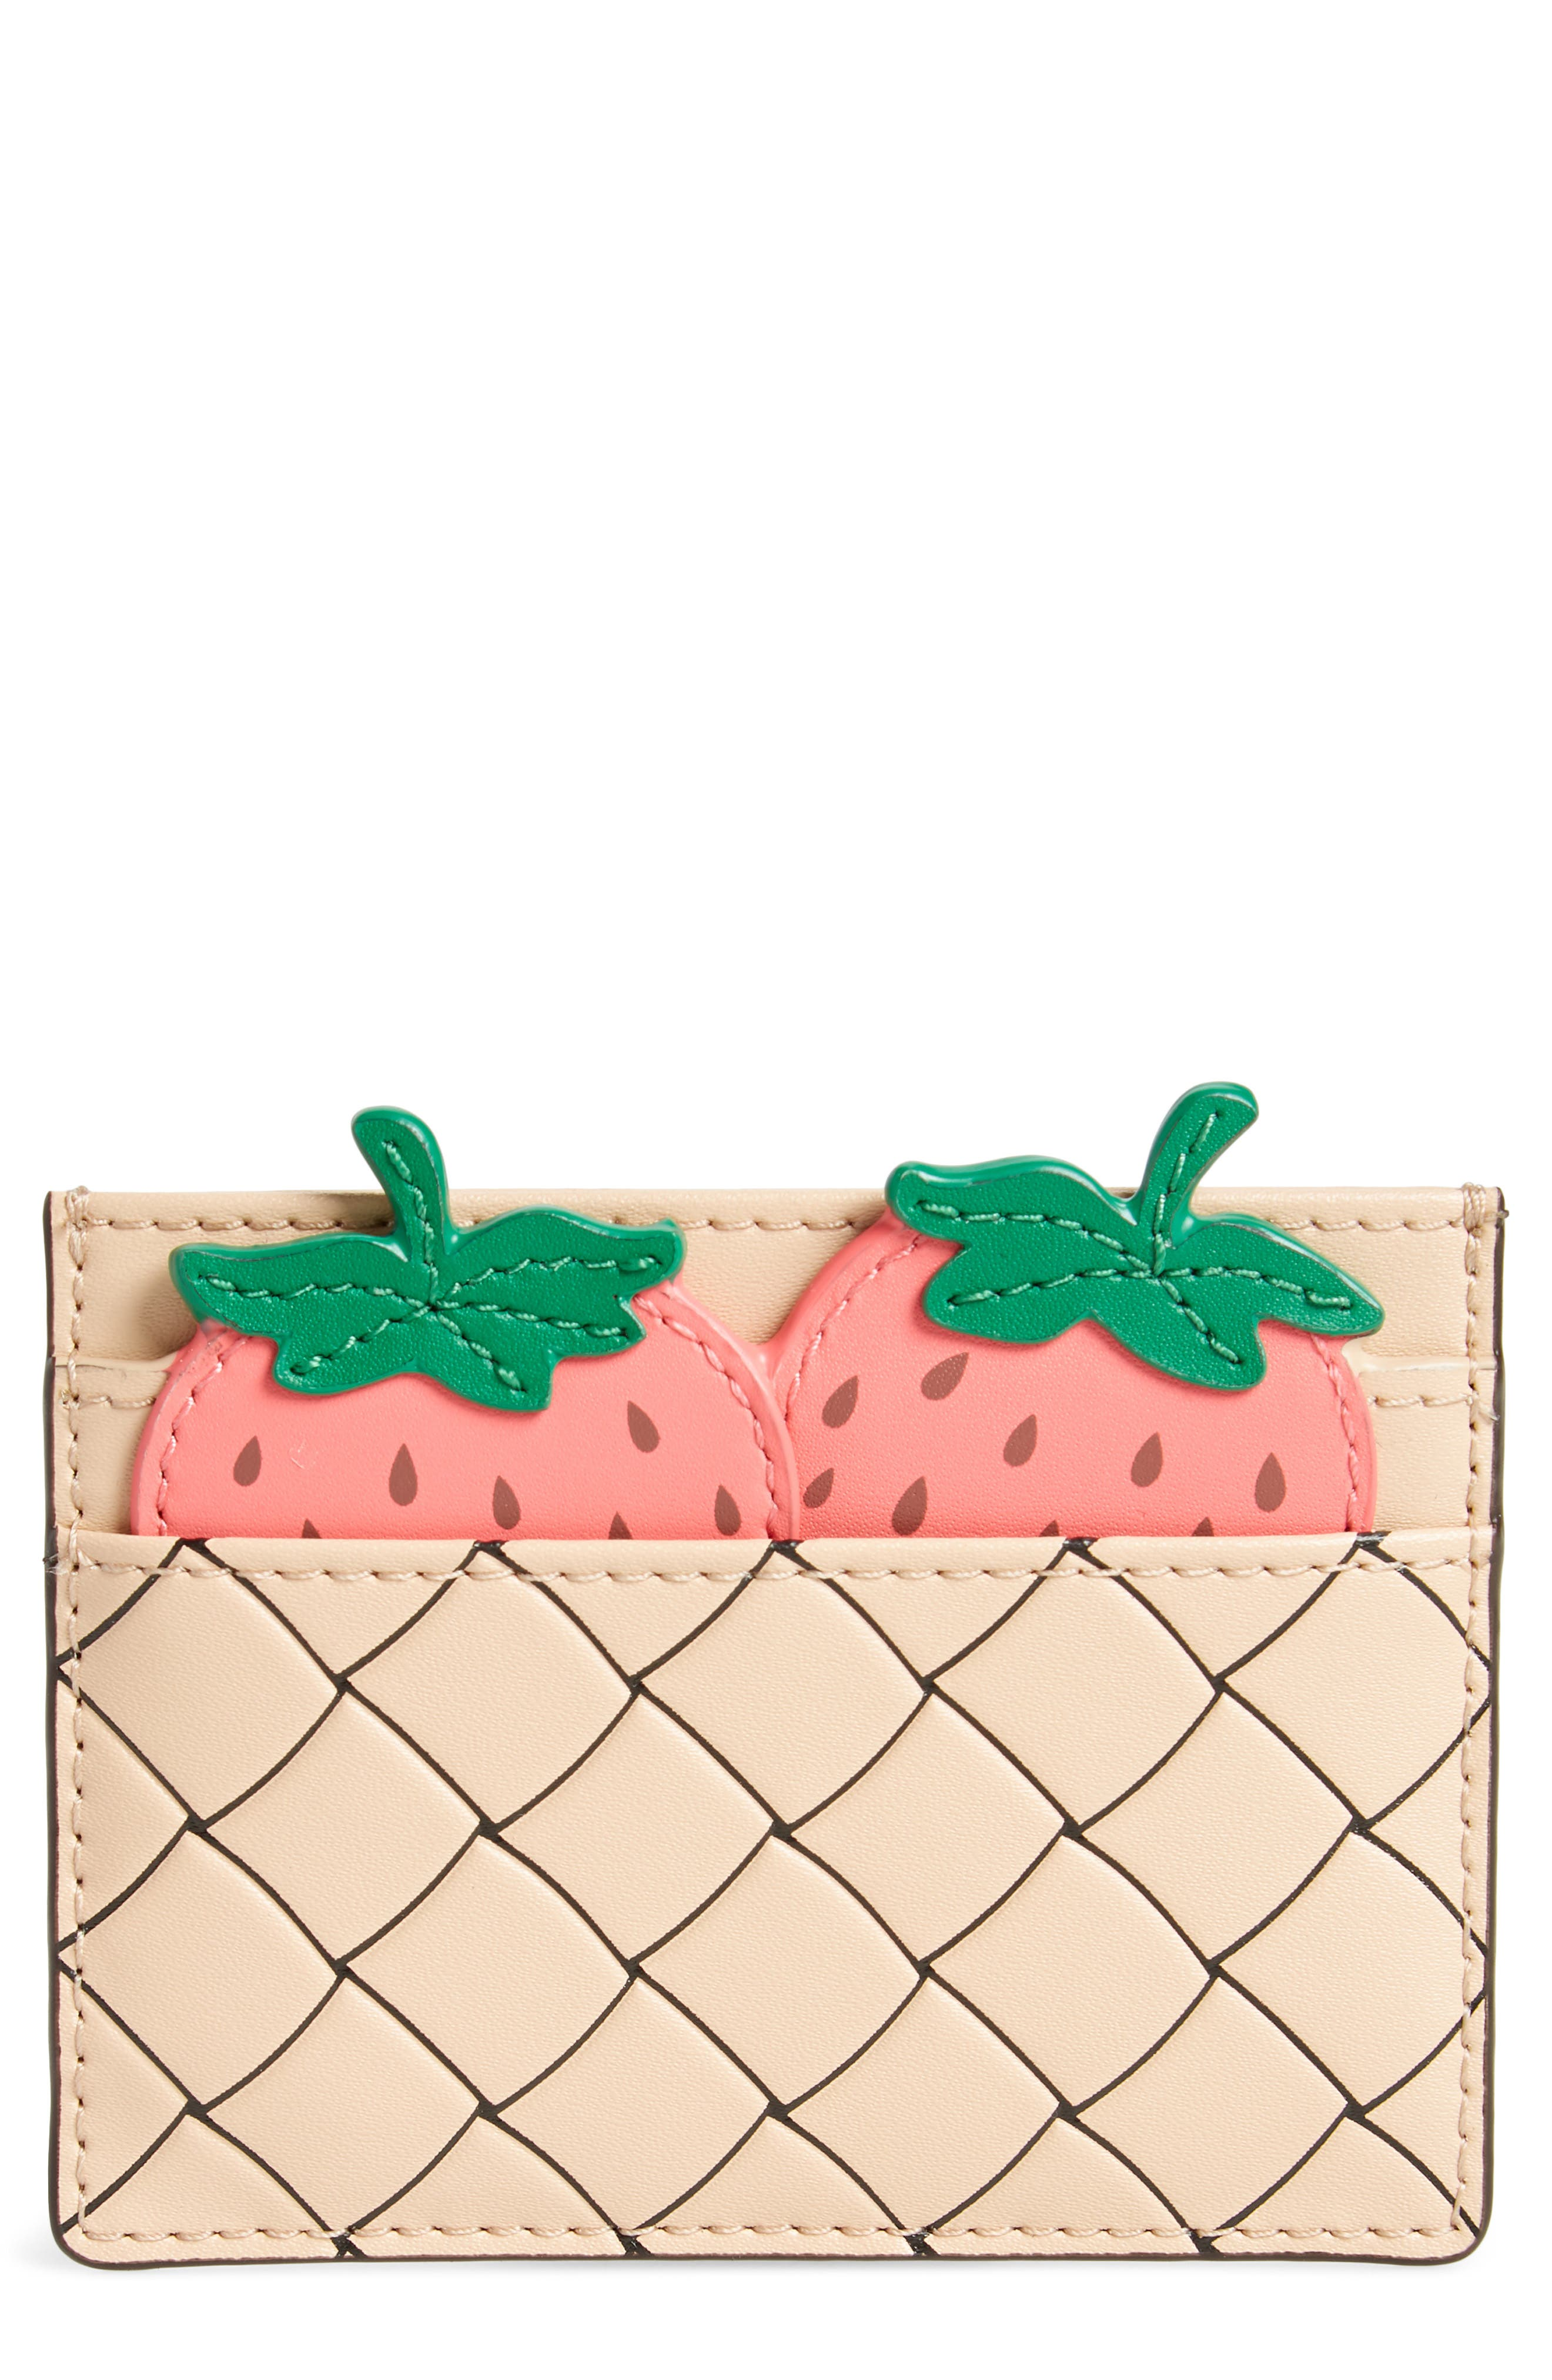 picnic strawberry basket leather card holder,                             Main thumbnail 1, color,